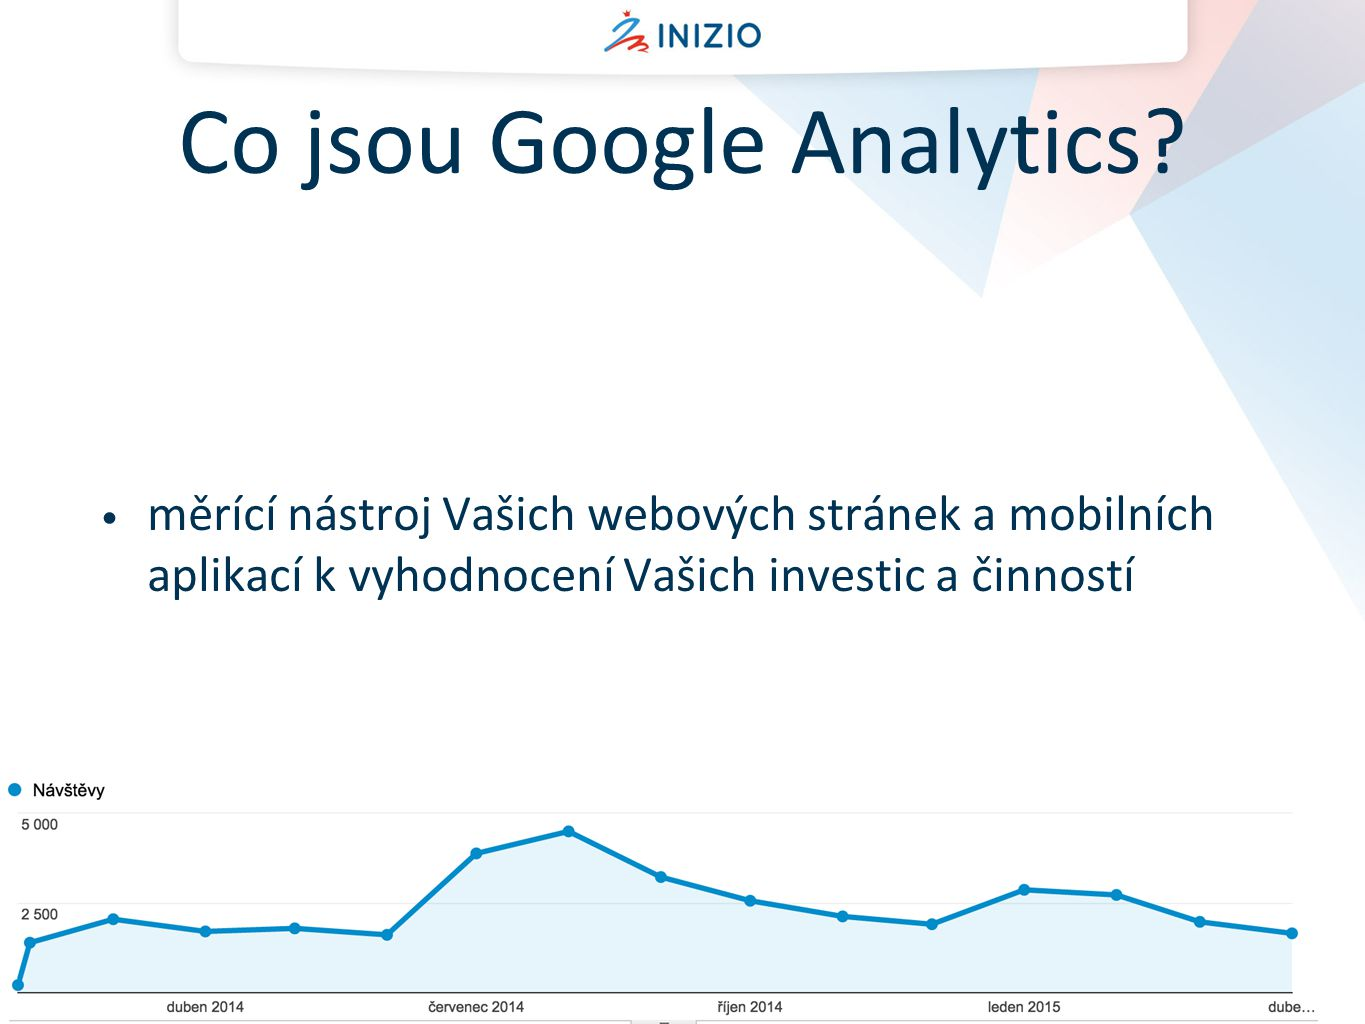 Co jsou Google Analytics